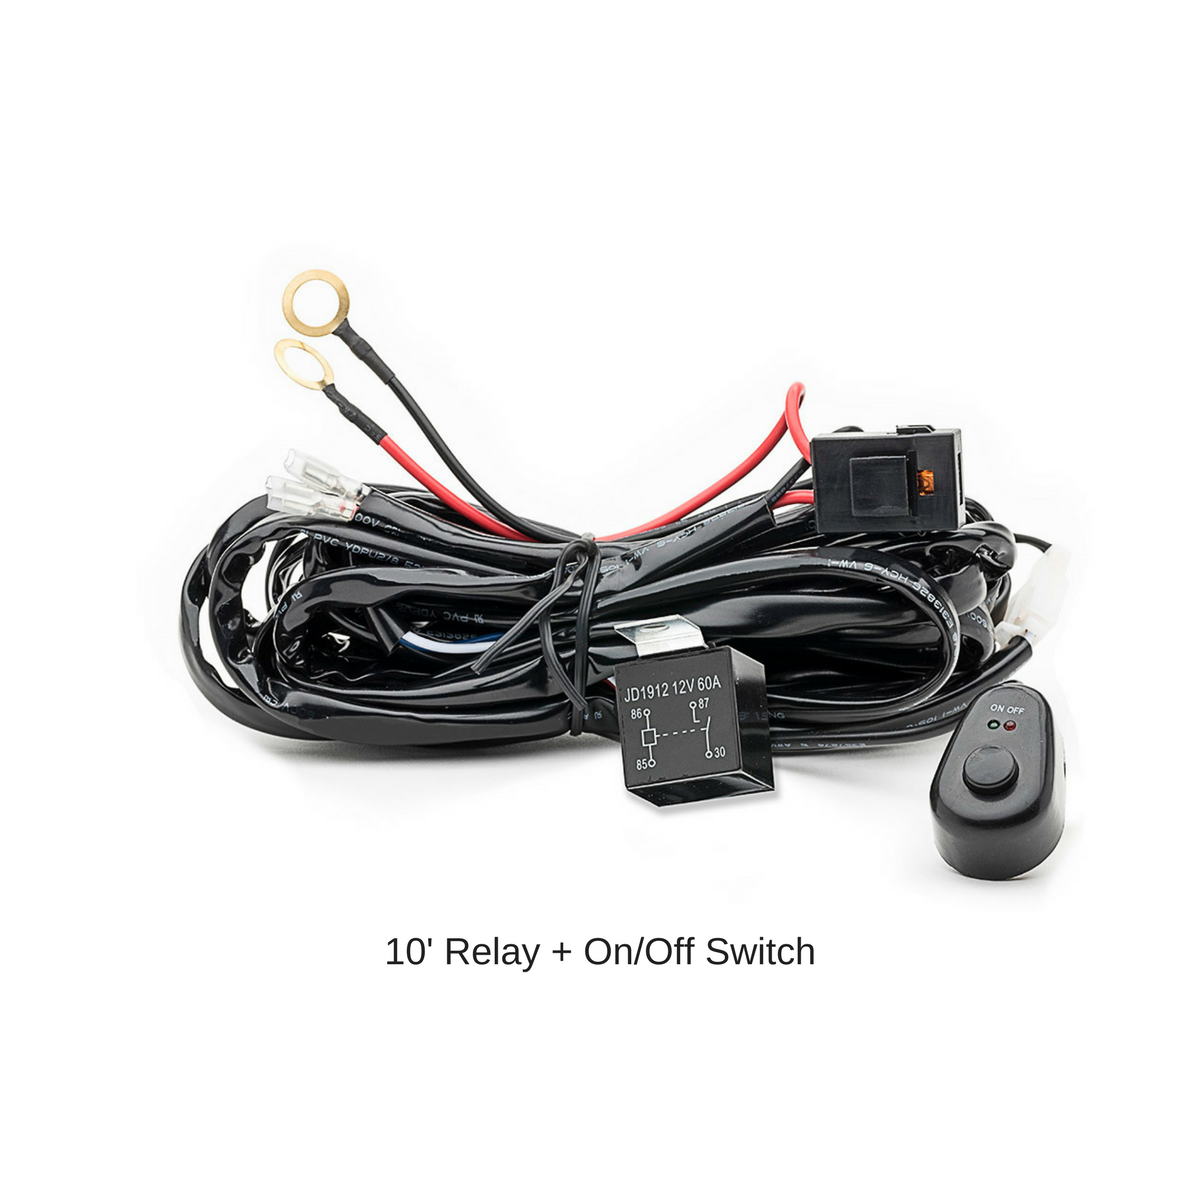 2 Pack Carbine 18 Off Road Led Light Bar W C18pf2 Stl On Switch Wiring Harness Relay One Line Control Lights Inch Floodlight 12v